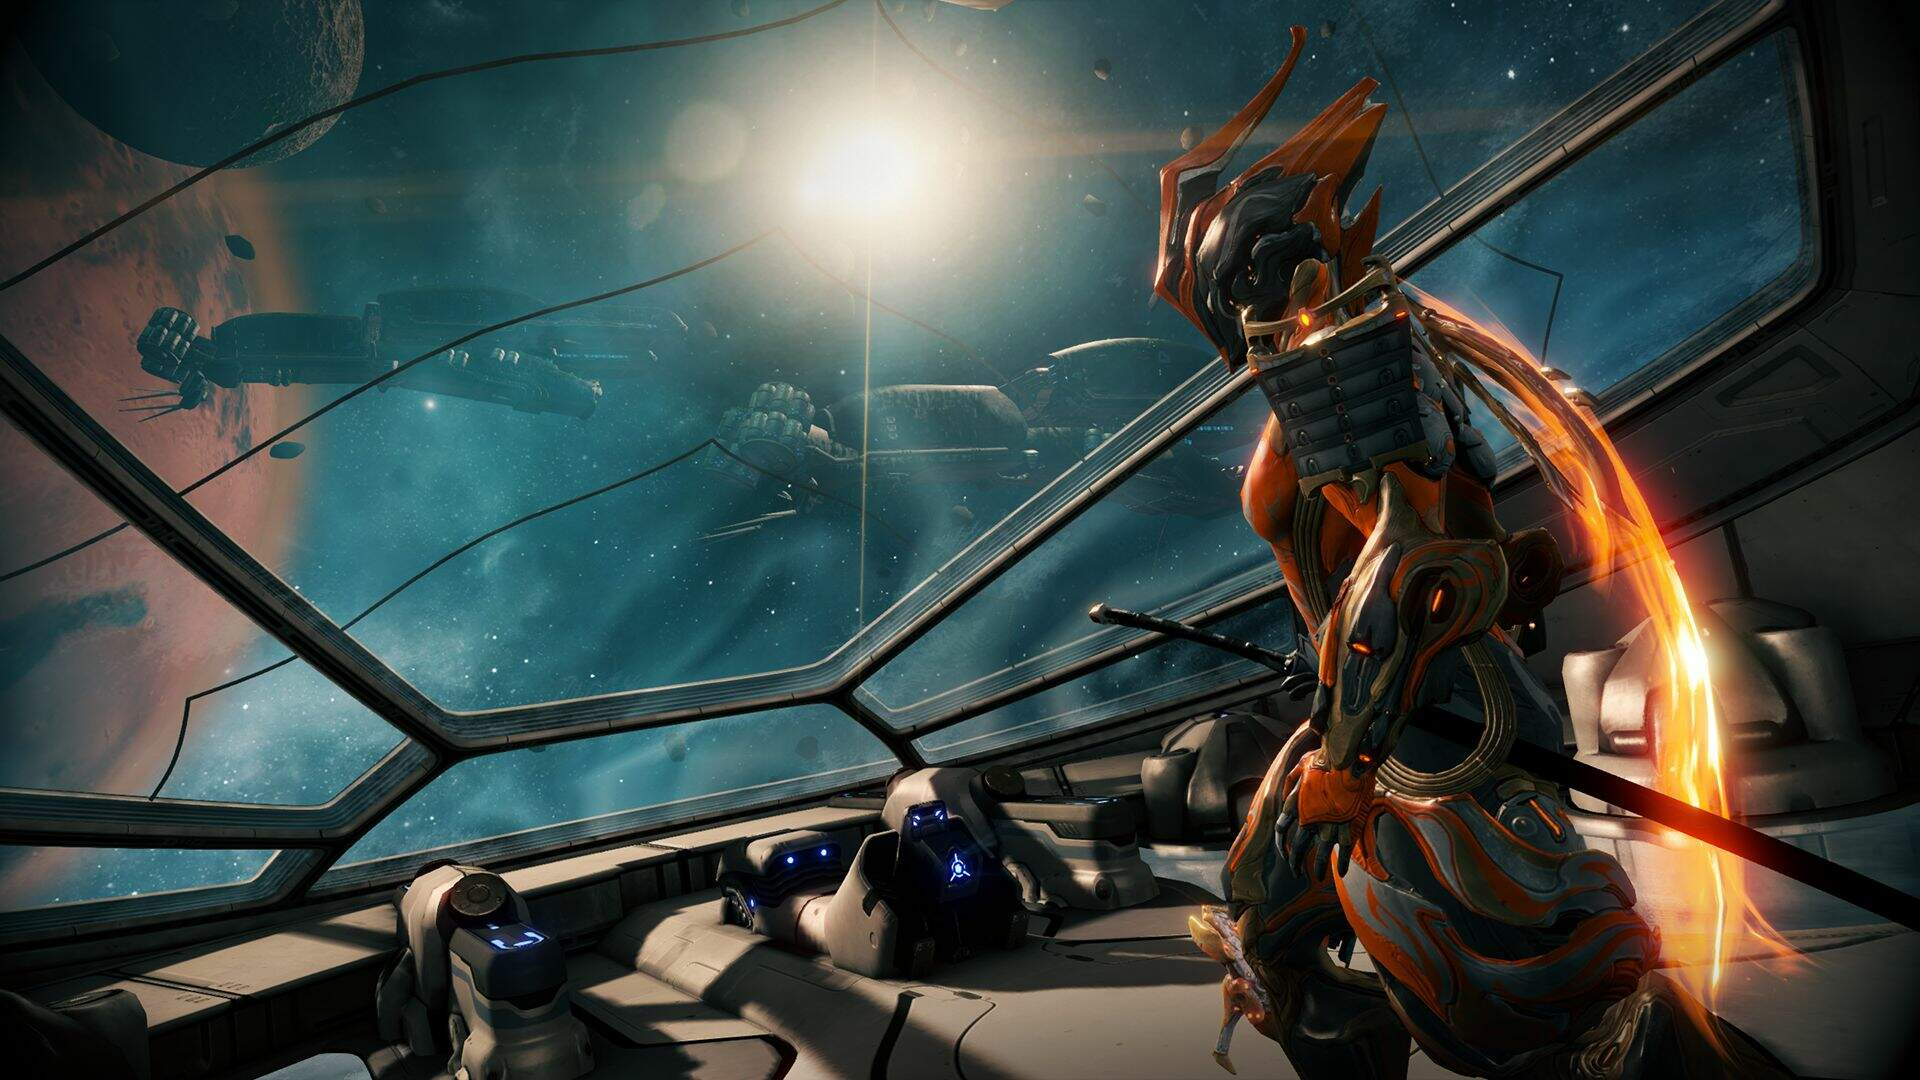 Warframe Developer Responds to Recent Wave of Negative Reviews on Steam